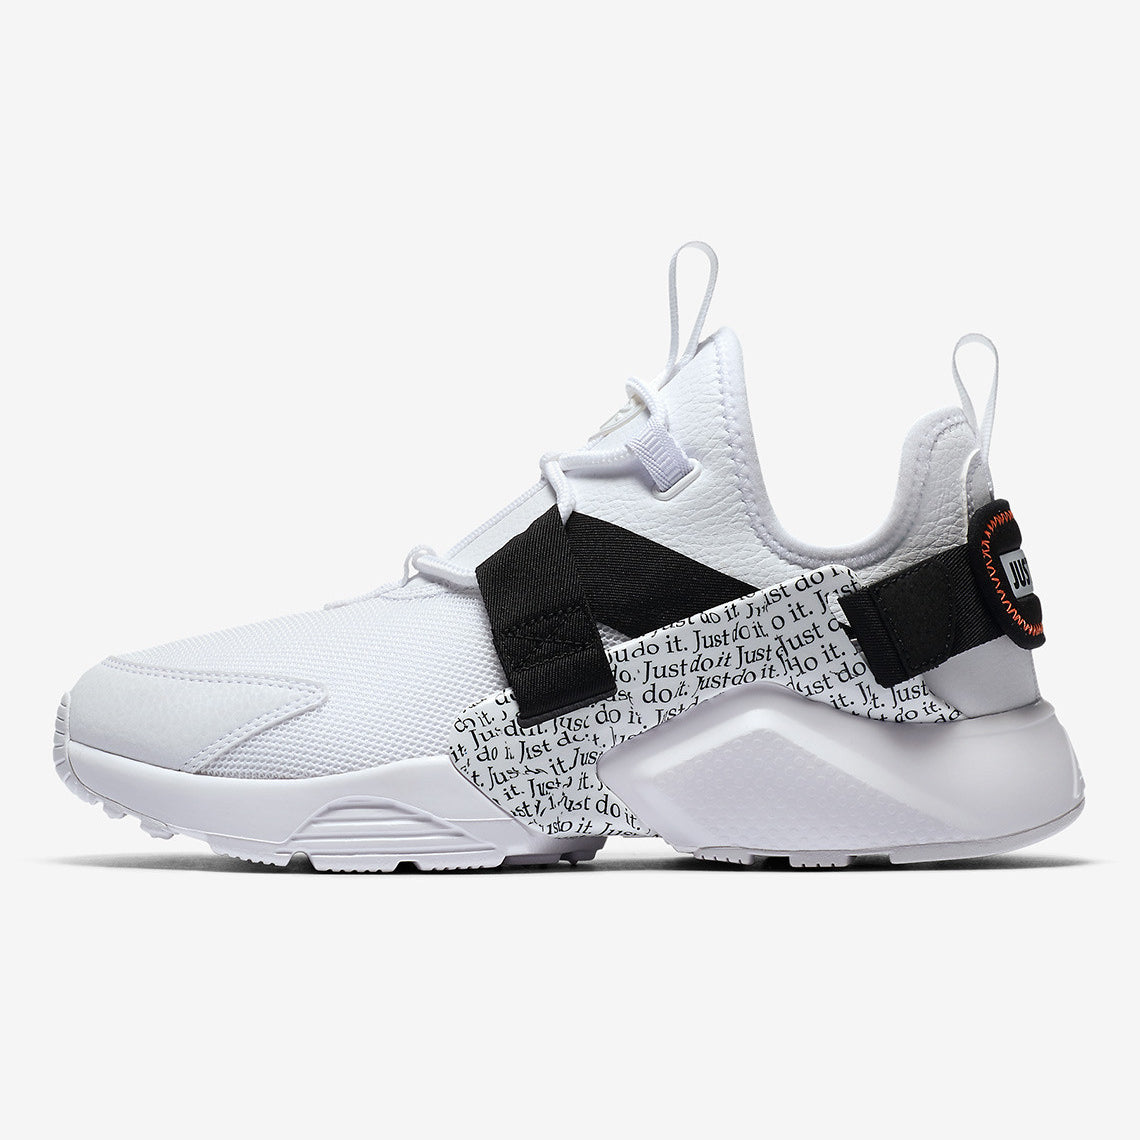 bf2c8451f056 Nike Wmns AIR HUARACHE CITY LOW PRM Just Do It Pack WHITE WHITE